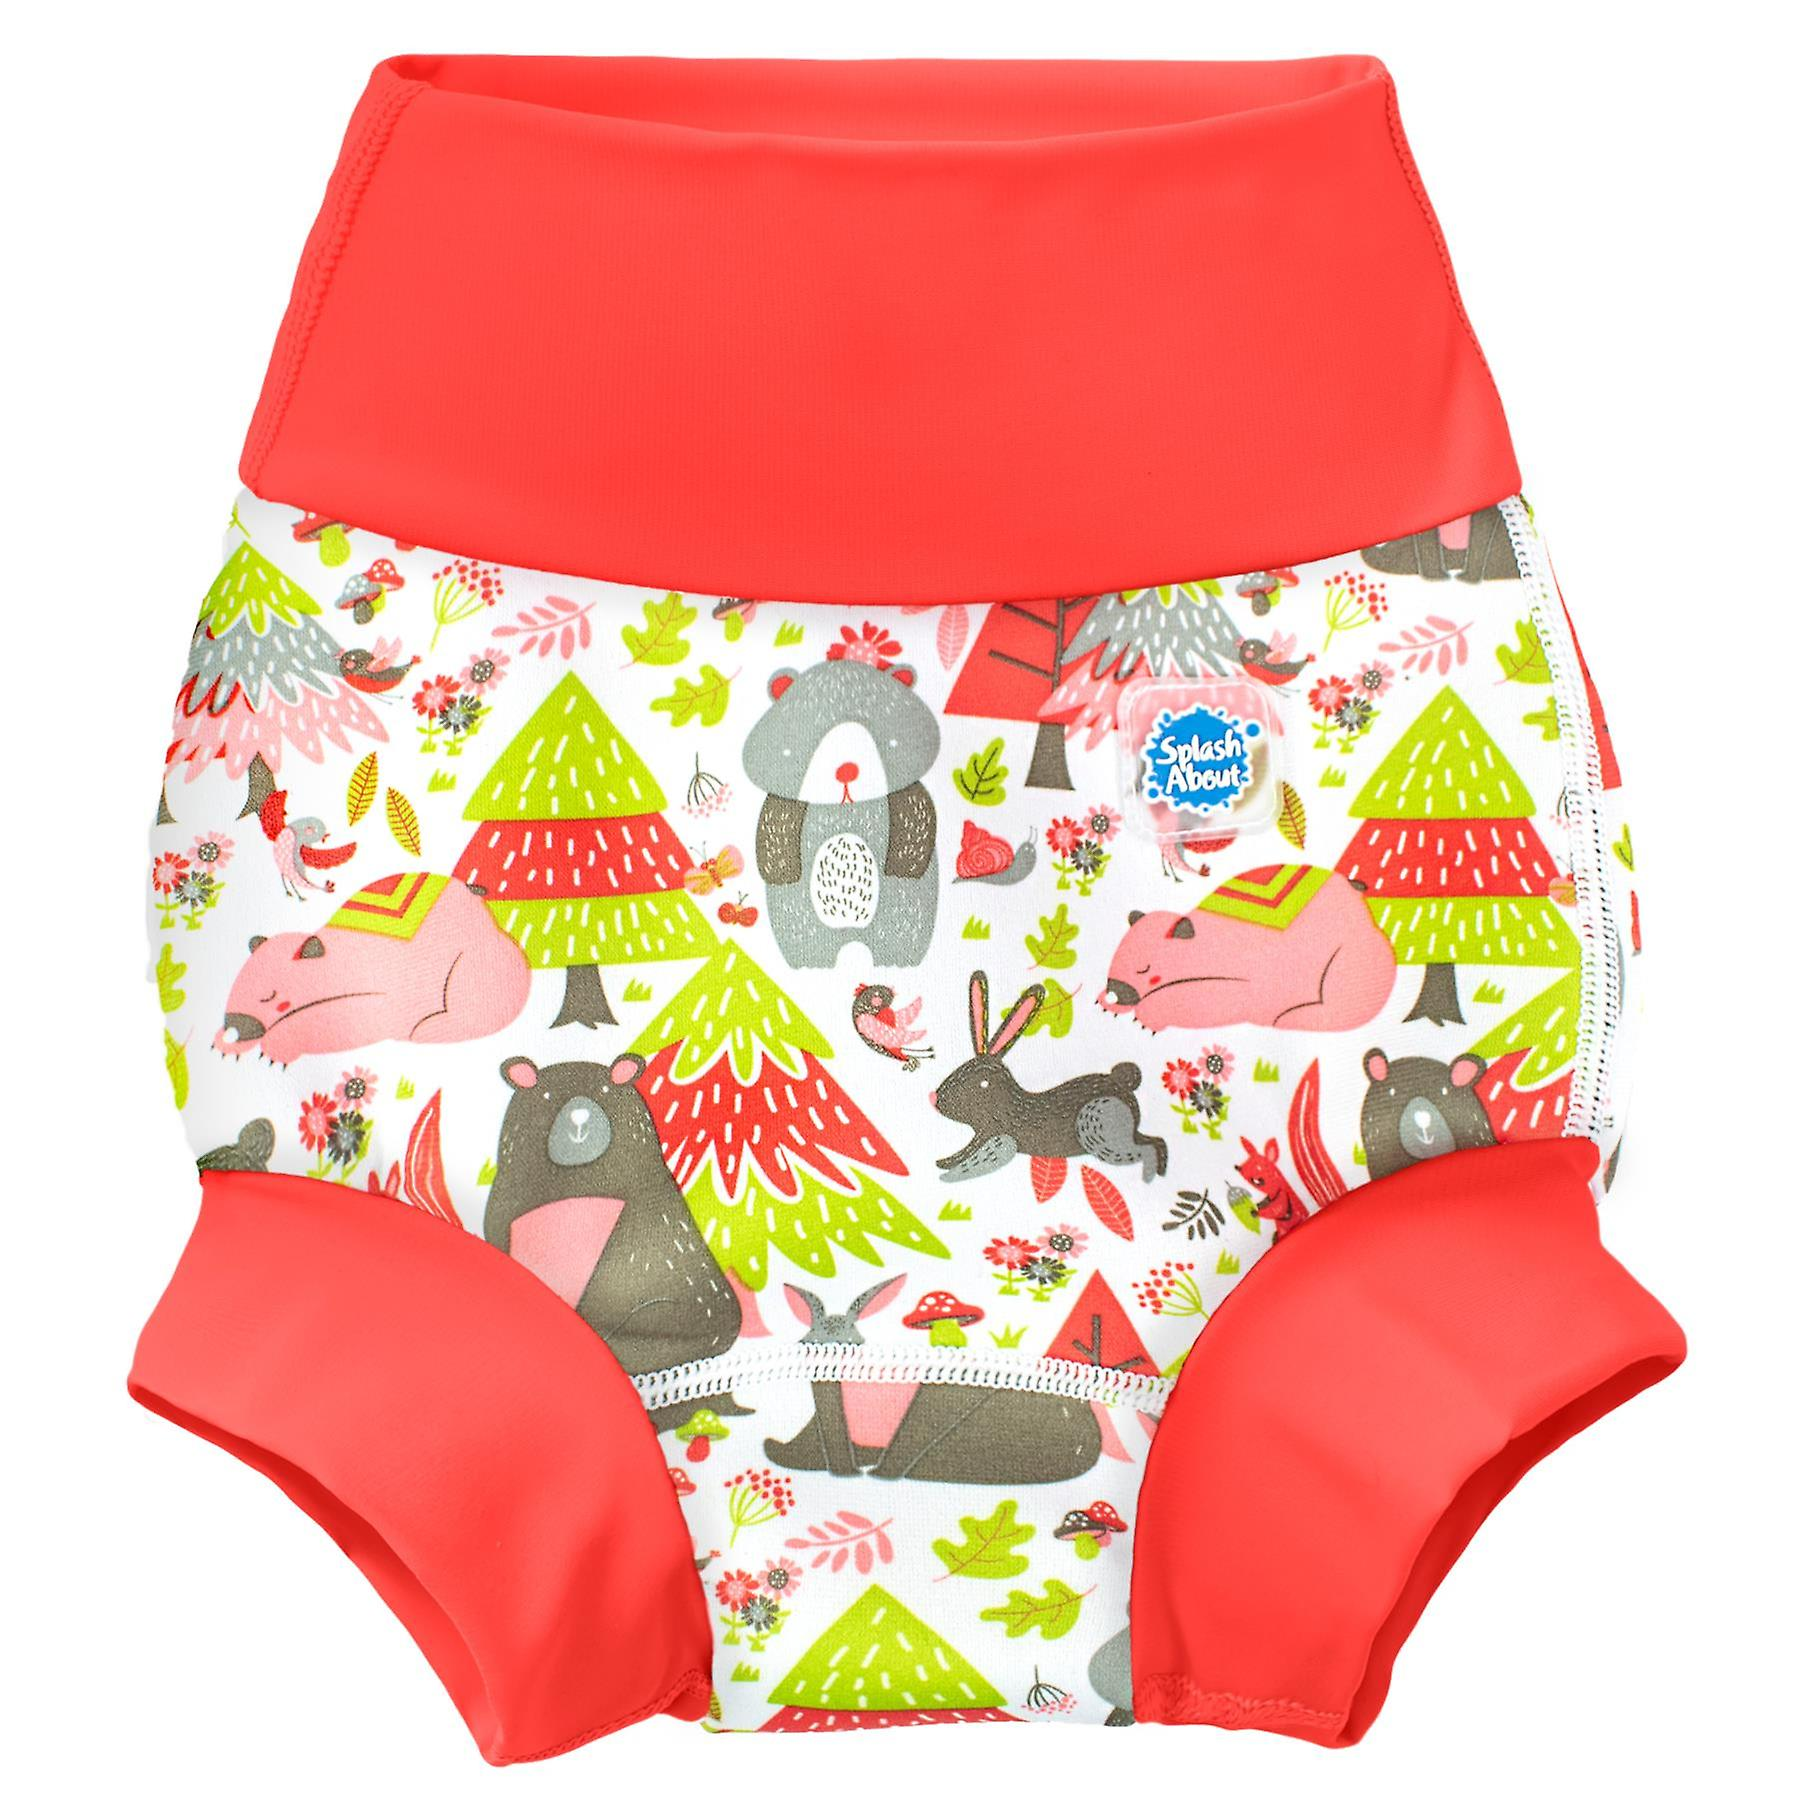 Splash About New Happy Nappy | Into The Woods